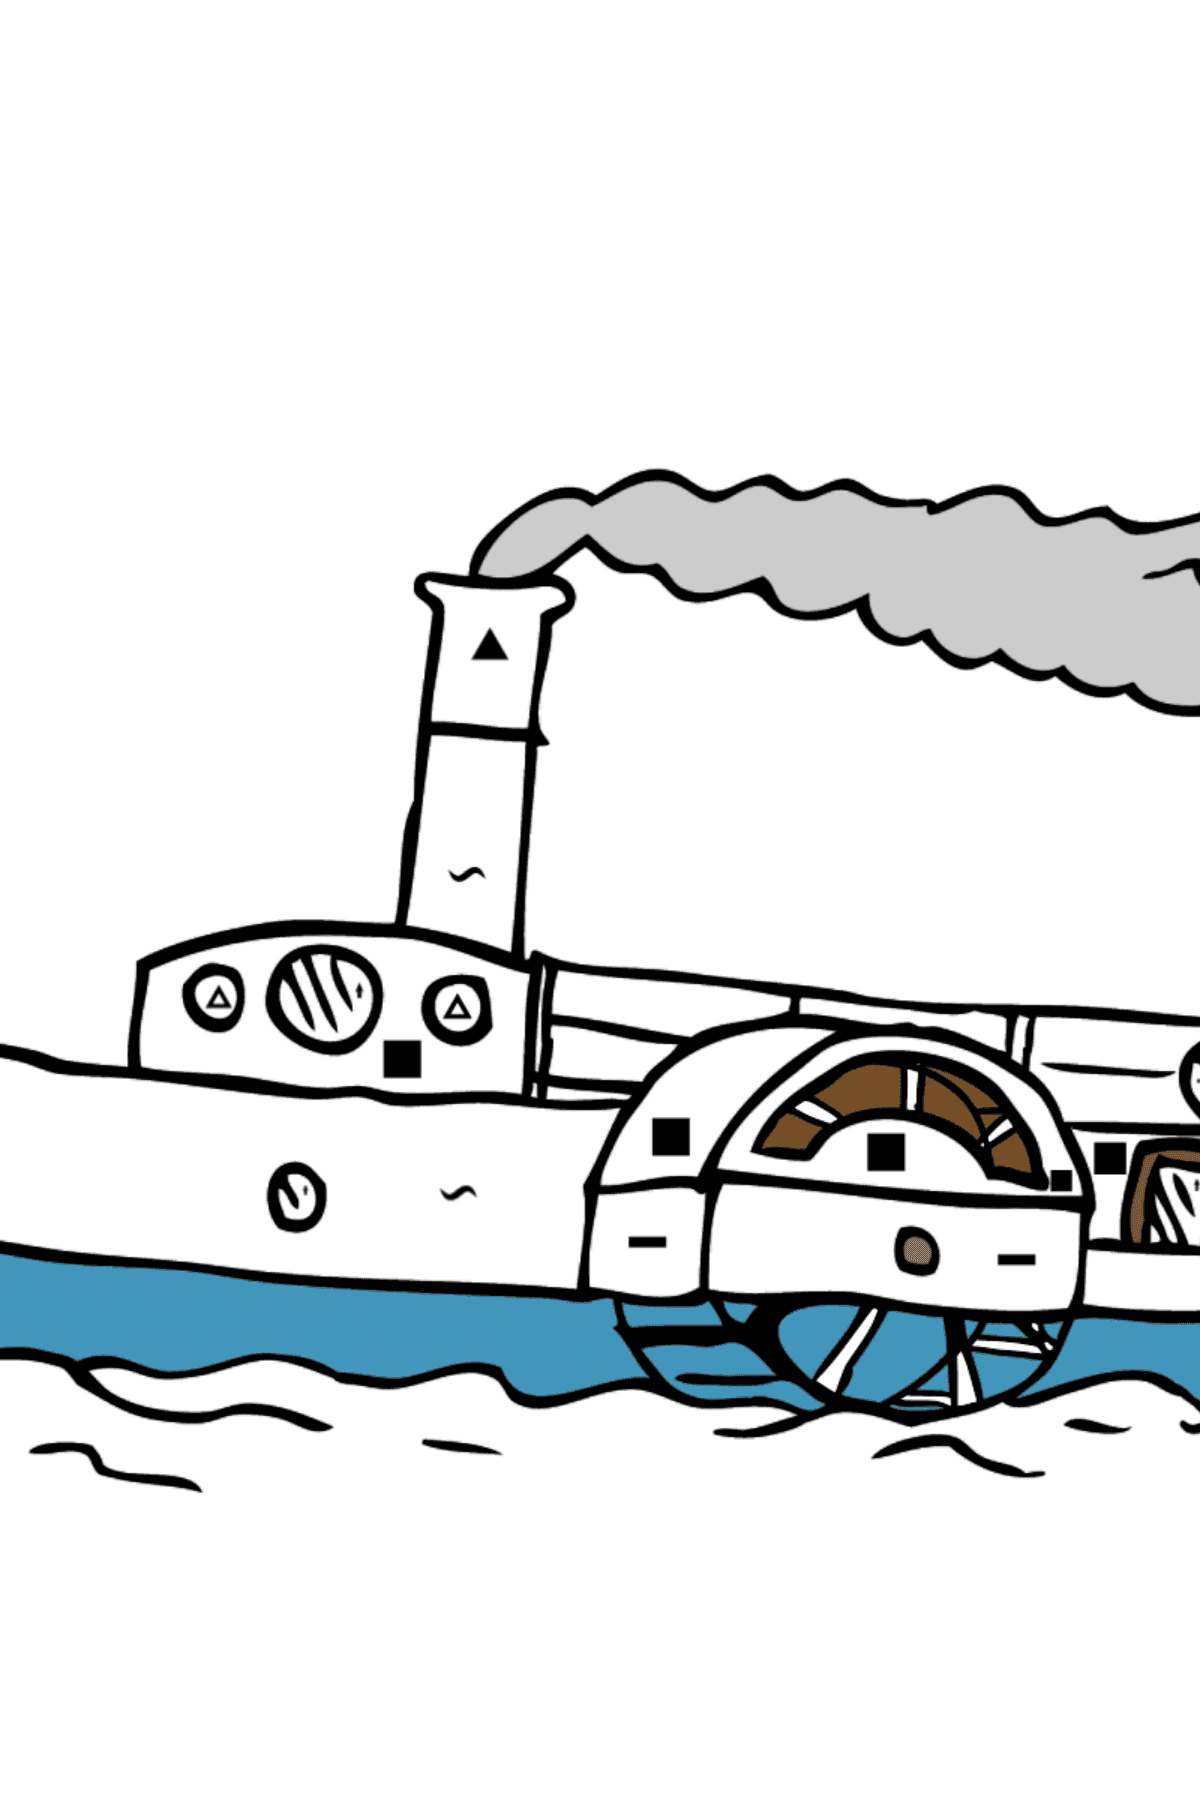 Coloring Page - A Ship with a Paddle Wheel - Coloring by Symbols for Kids